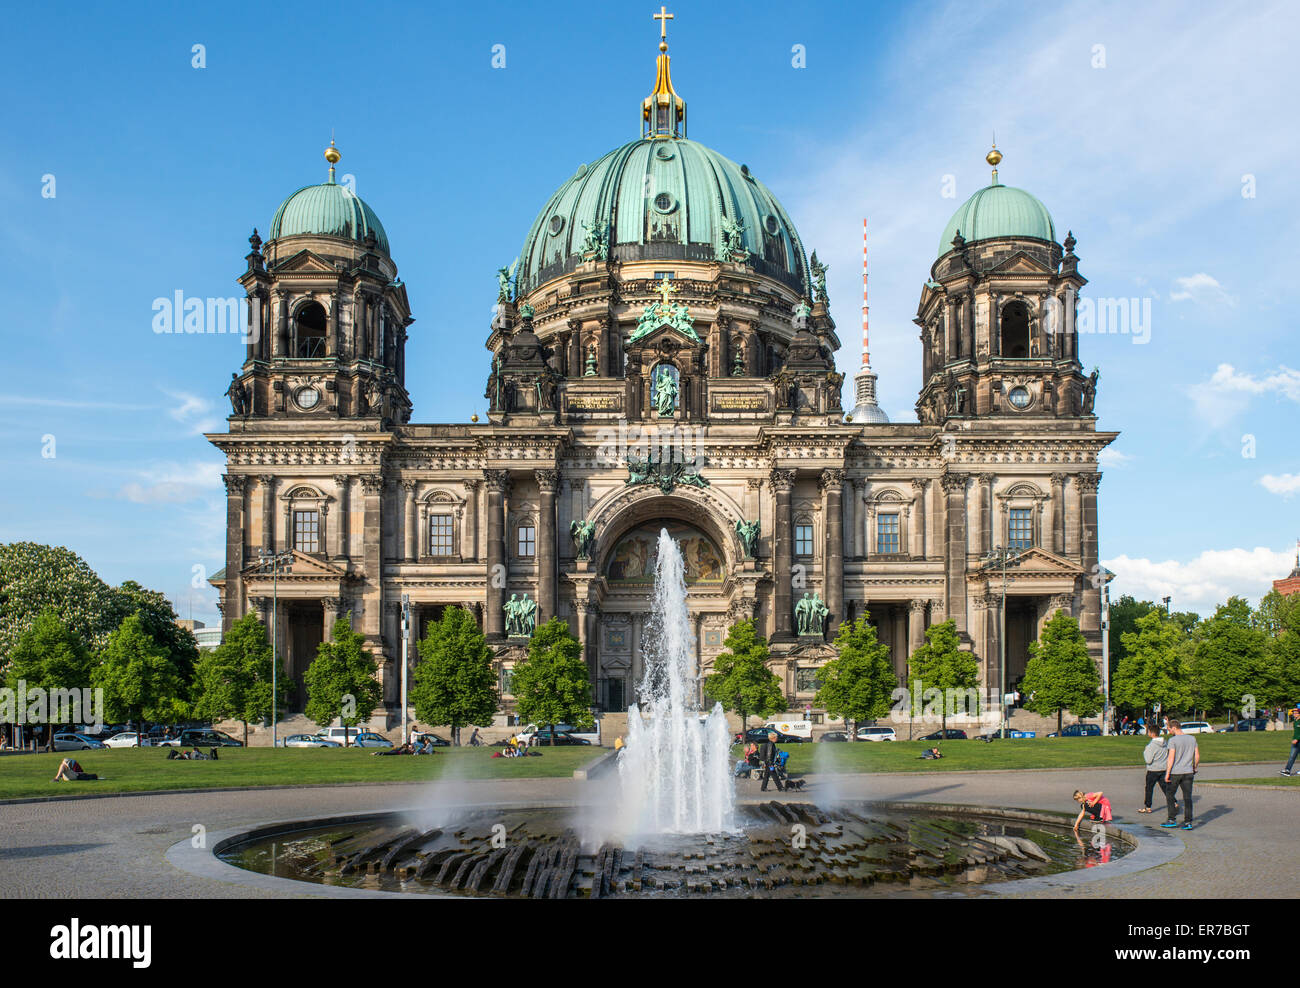 Berlin Cathedral (Berliner Dom) on Museum Island in the Mitte district of the German capital city - Stock Image